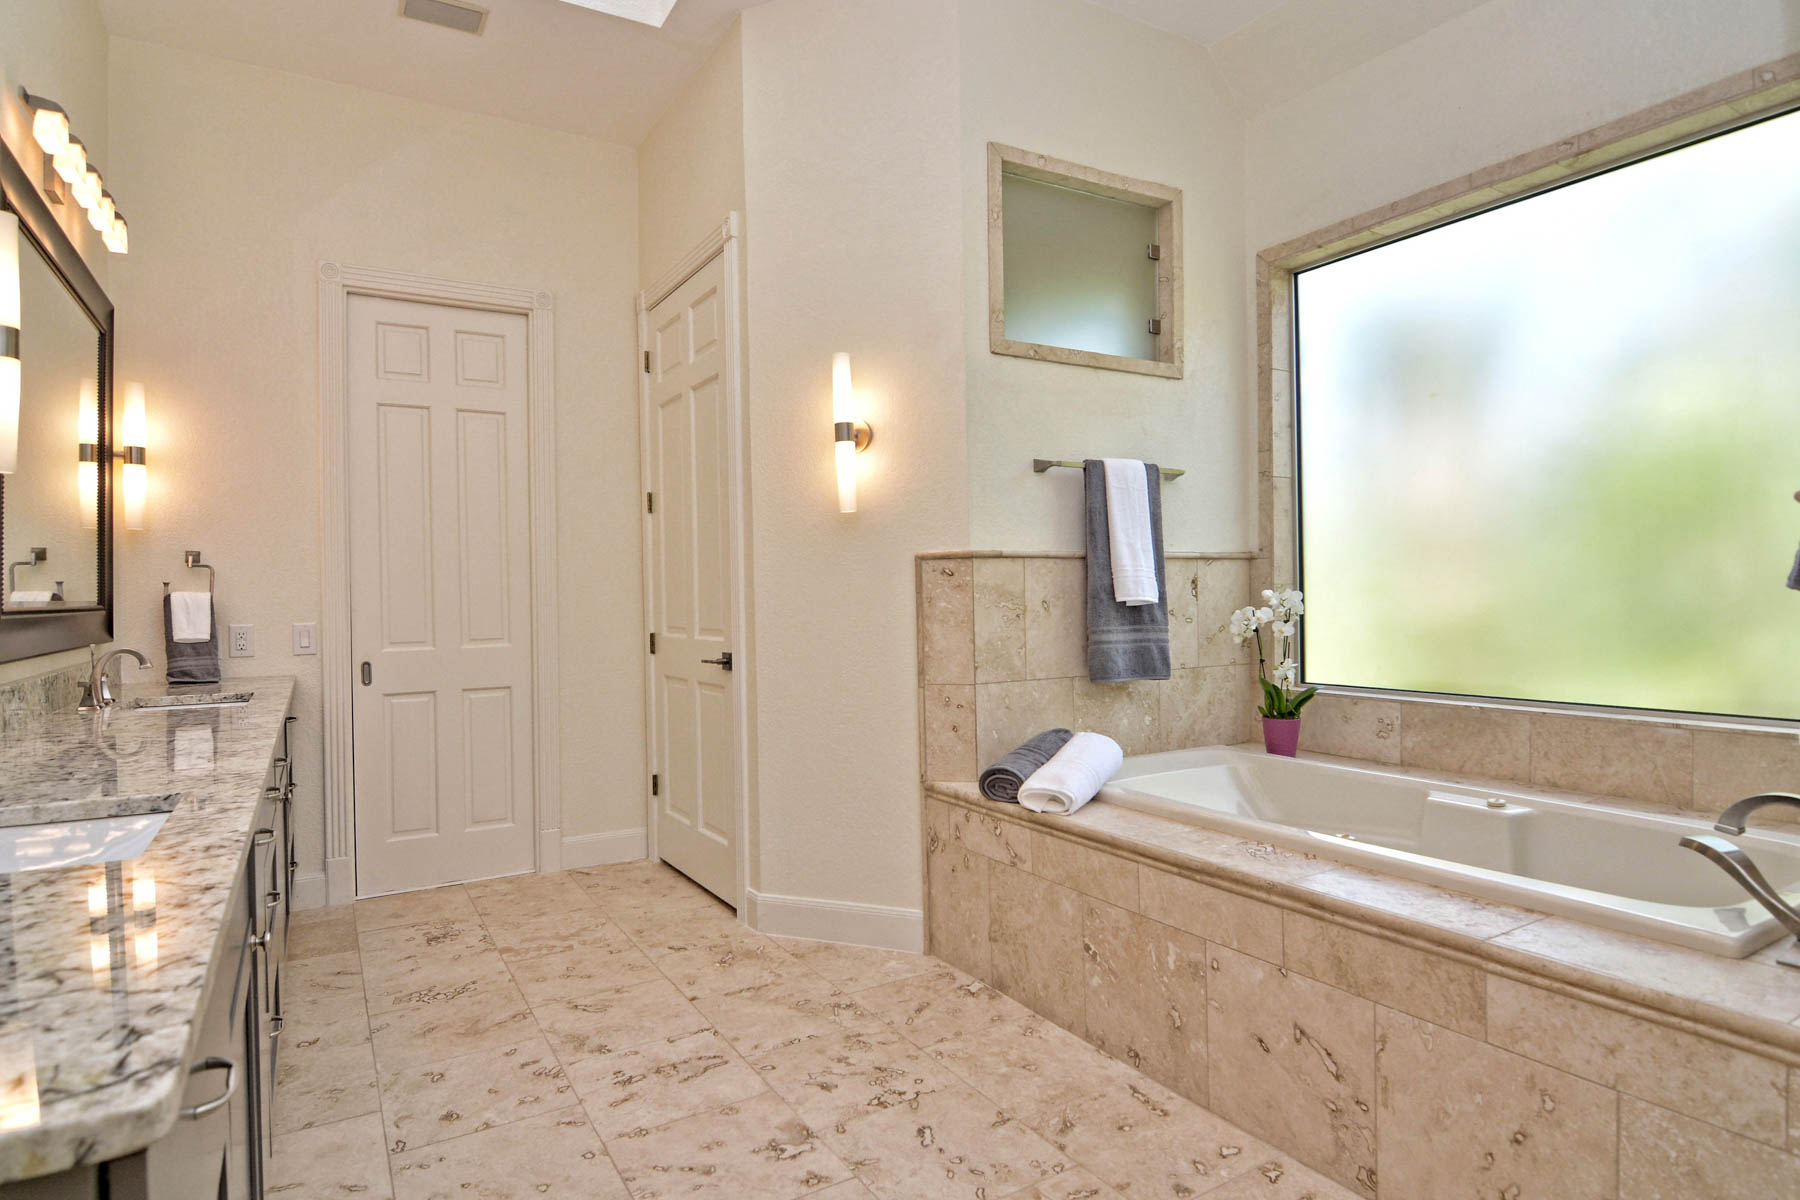 Additional photo for property listing at Elegant Home in The Dominion 5 Whitechurch Ln San Antonio, Texas 78257 United States